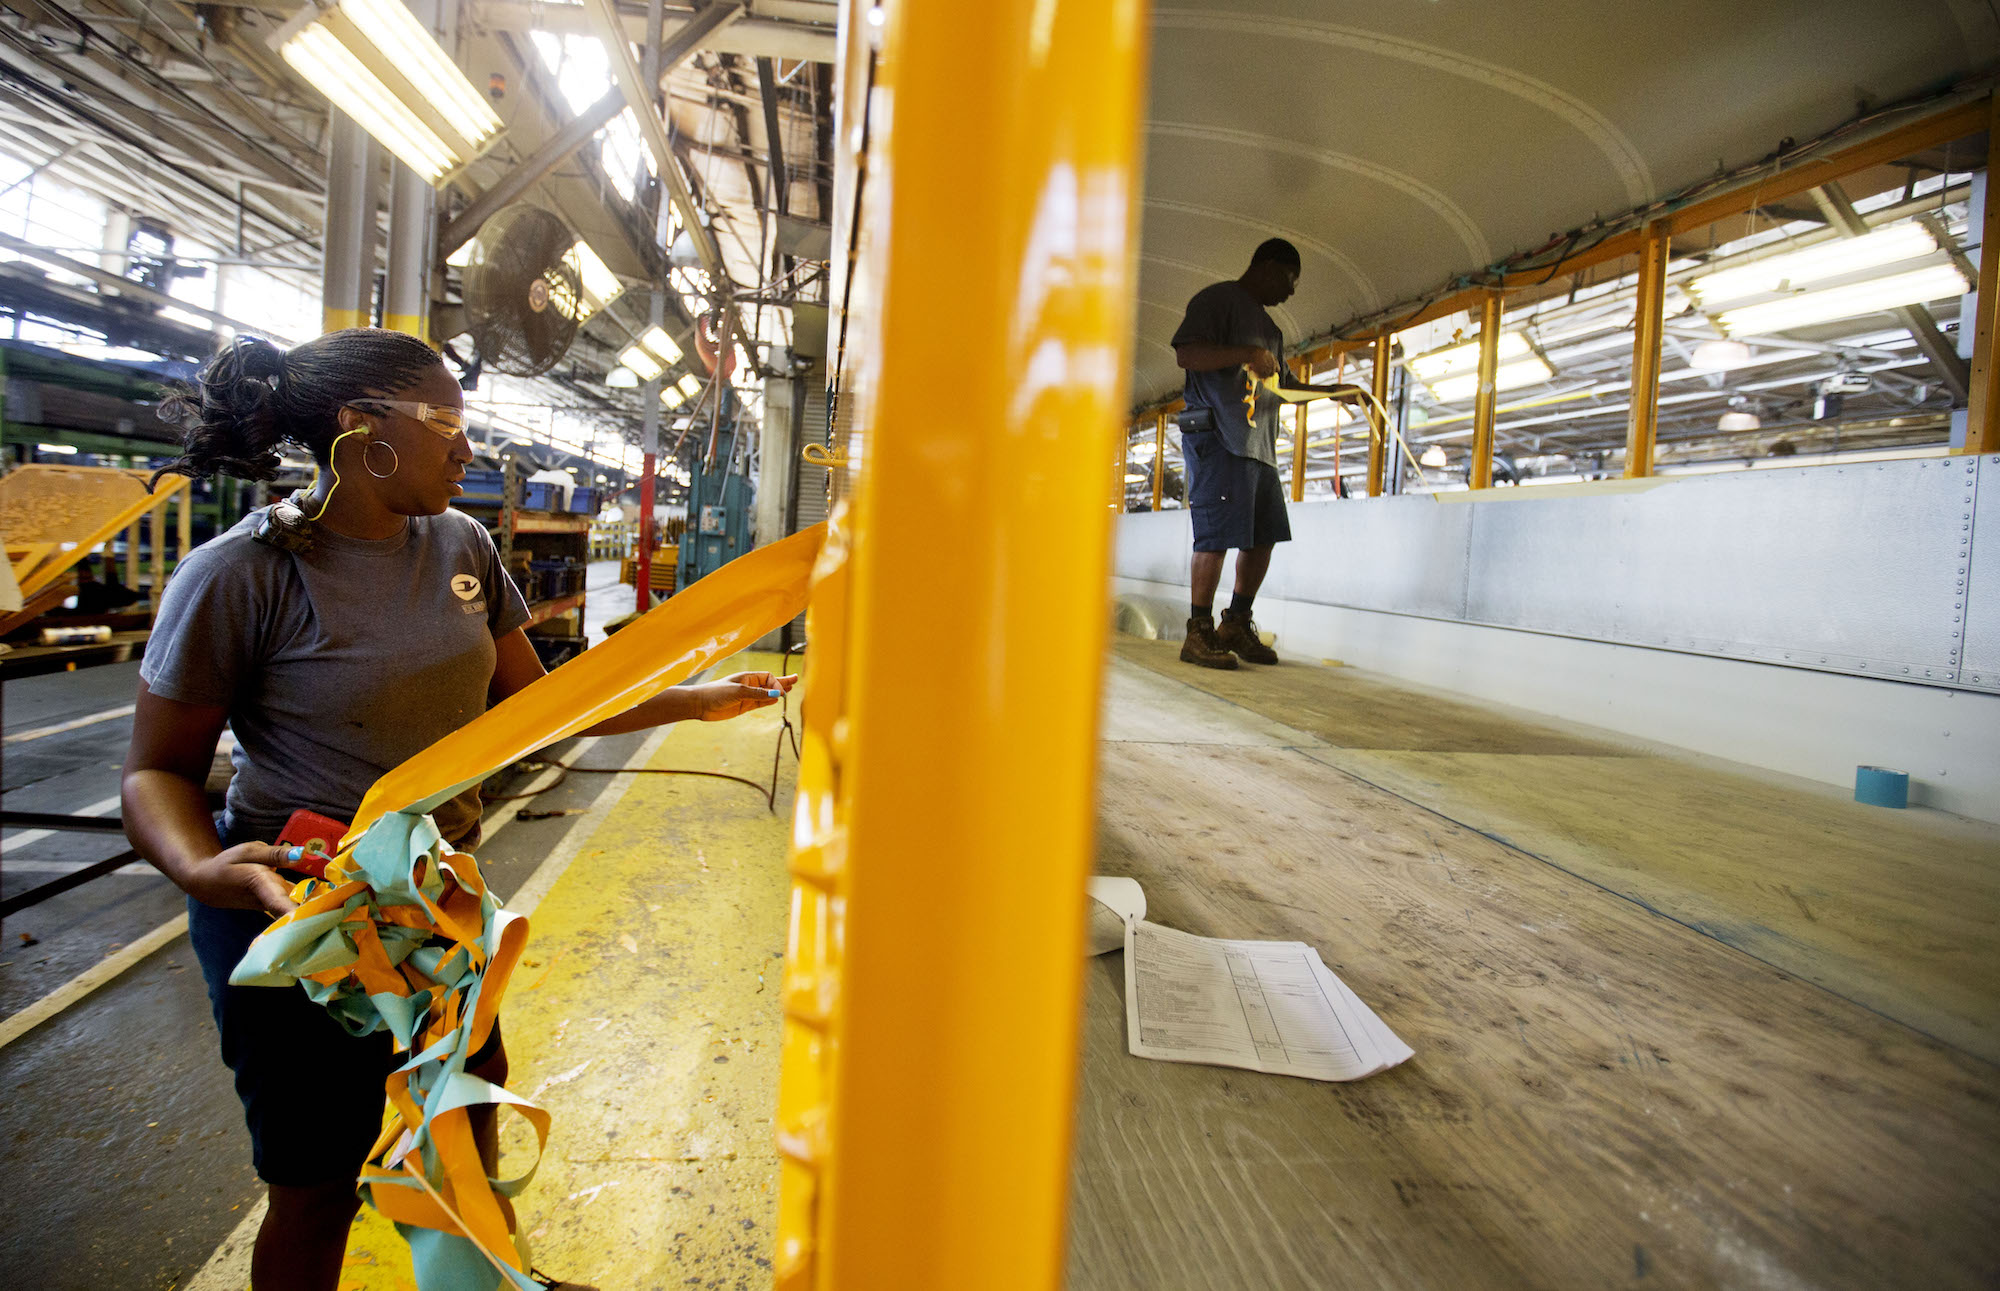 Employees work on a school bus on the assembly line at Blue Bird Corporation's manufacturing facility in Fort Valley, Ga. (AP Photo/David Goldman)